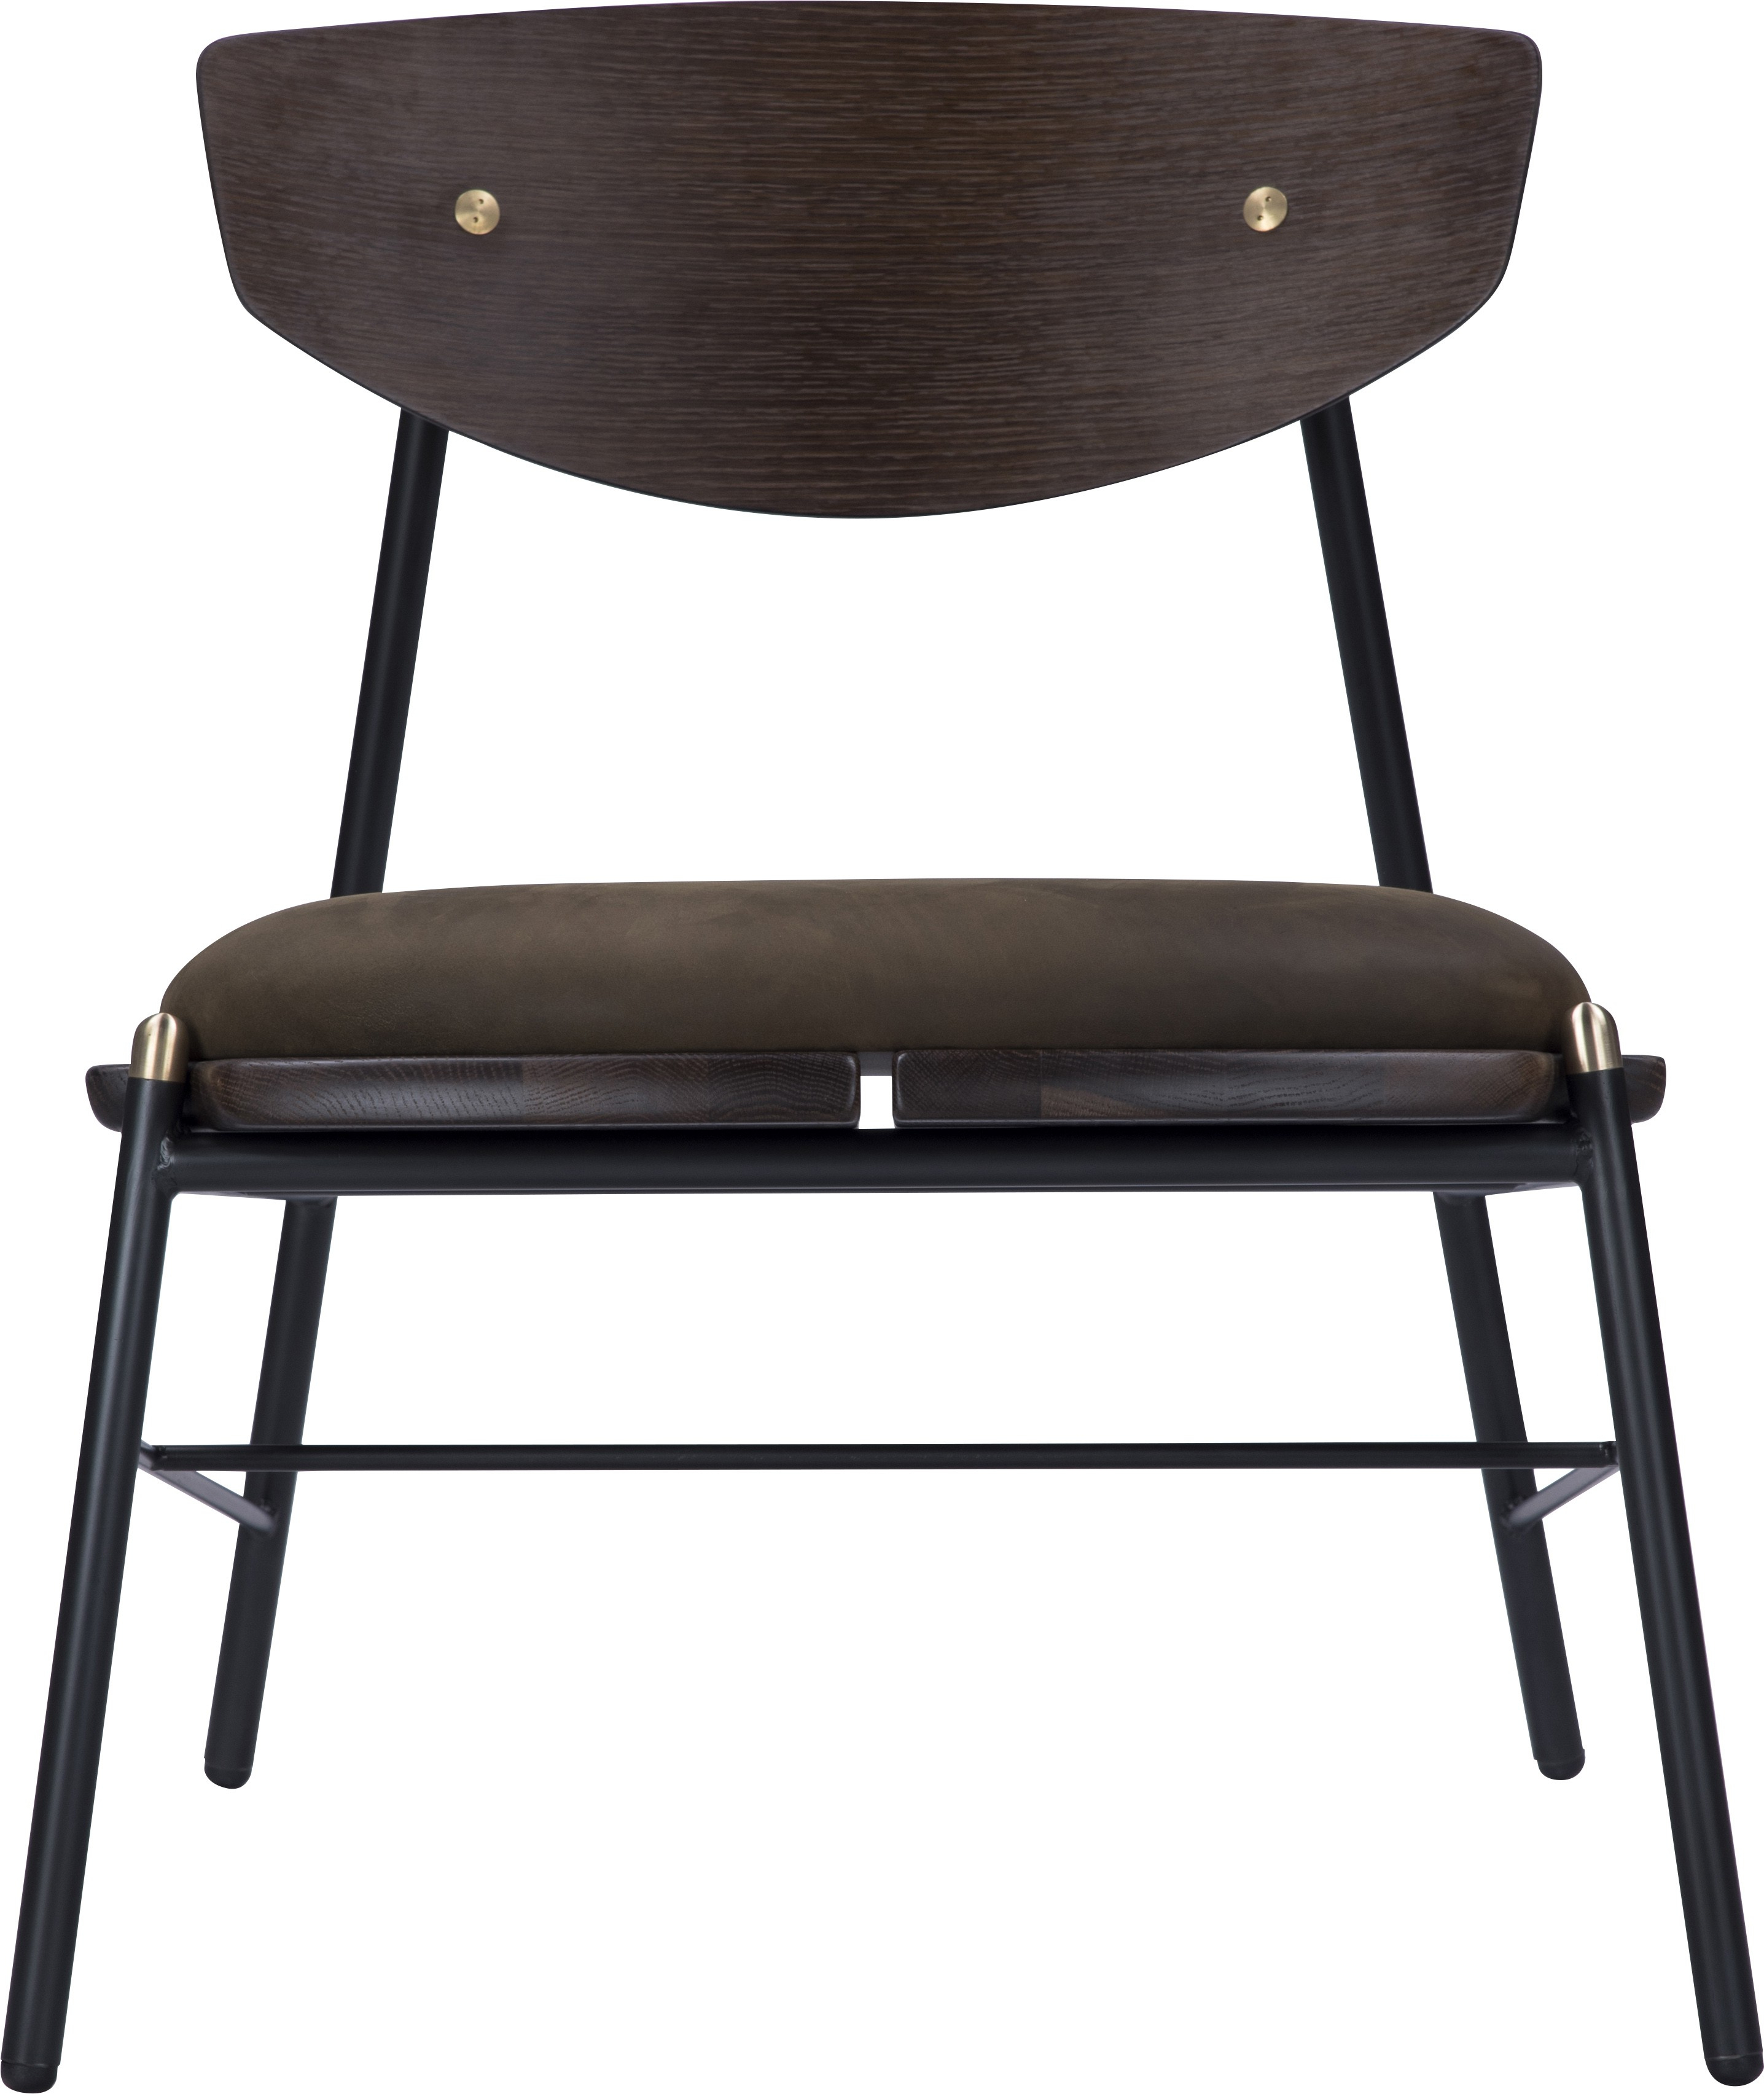 Kink Lounge Chair Jin Leather Within Mix Leather Imprint Metal Frame Console Tables (View 18 of 20)